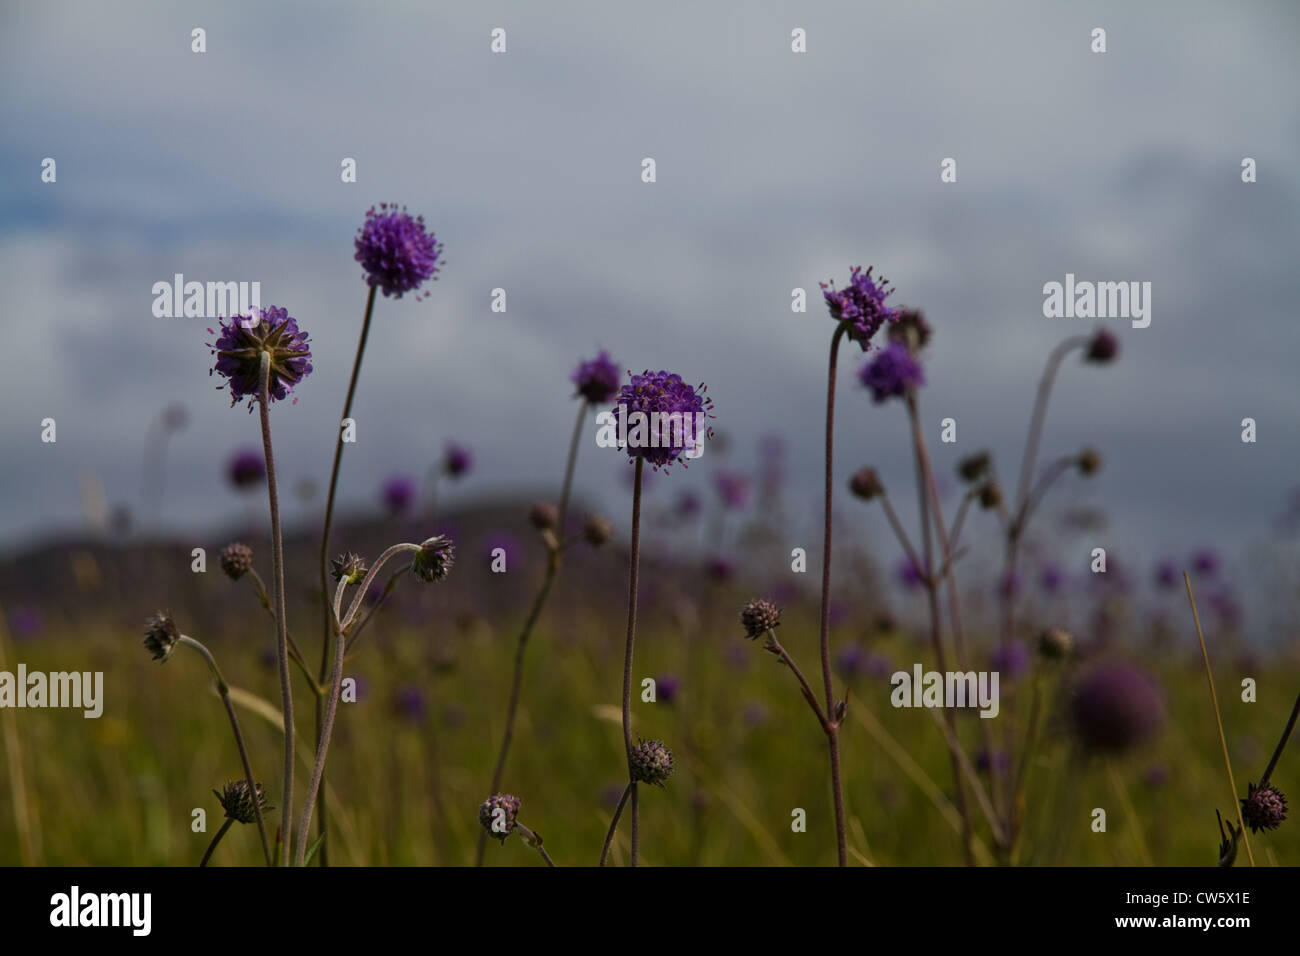 Devil's bit scabious (Succisa pratensis) on the machair on Sanday, Isle of Canna, Small Isles, Scotland - Stock Image